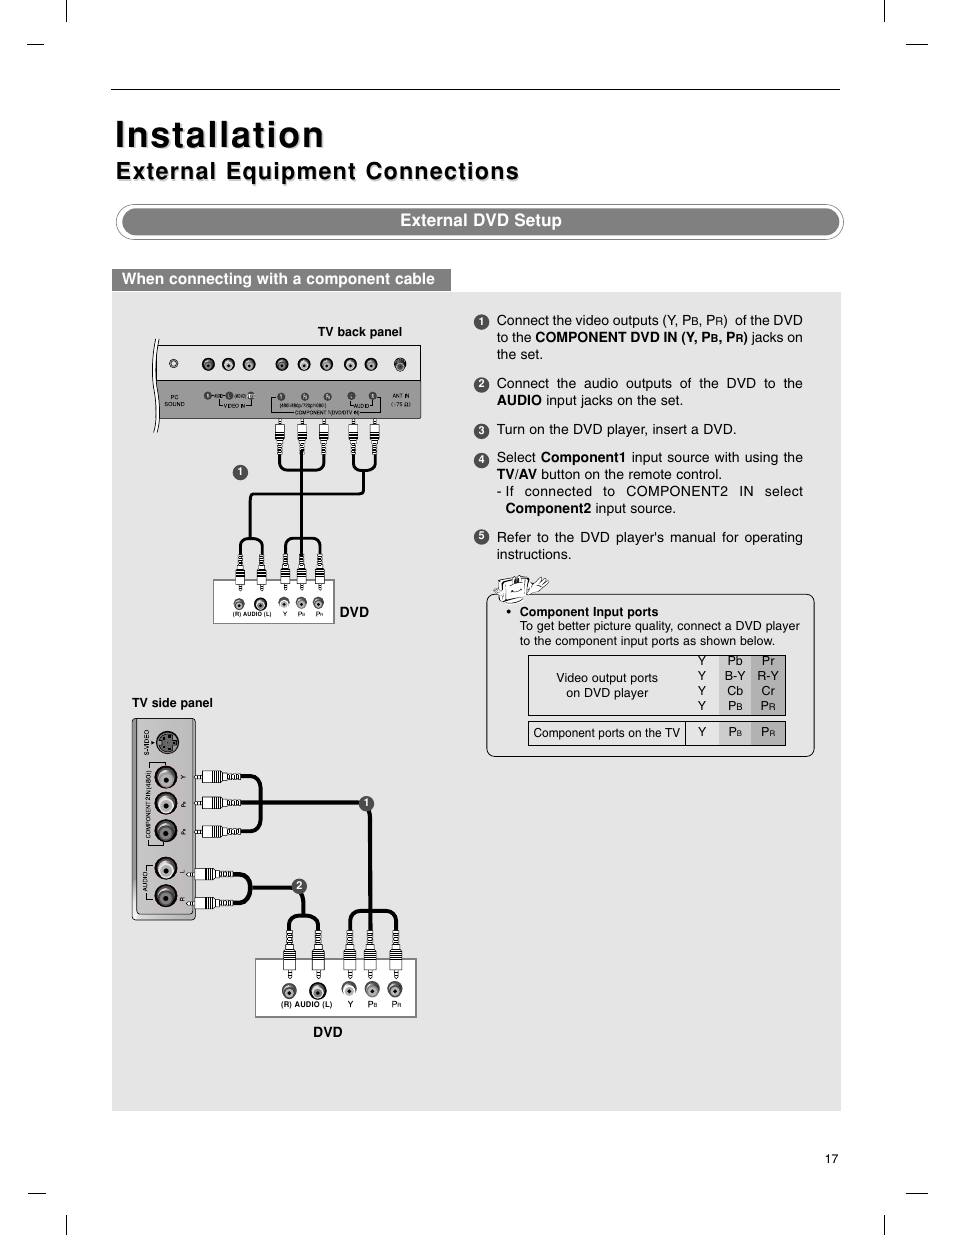 Installation, External equipment connections, External dvd setup | LG  23LX1RV User Manual | Page